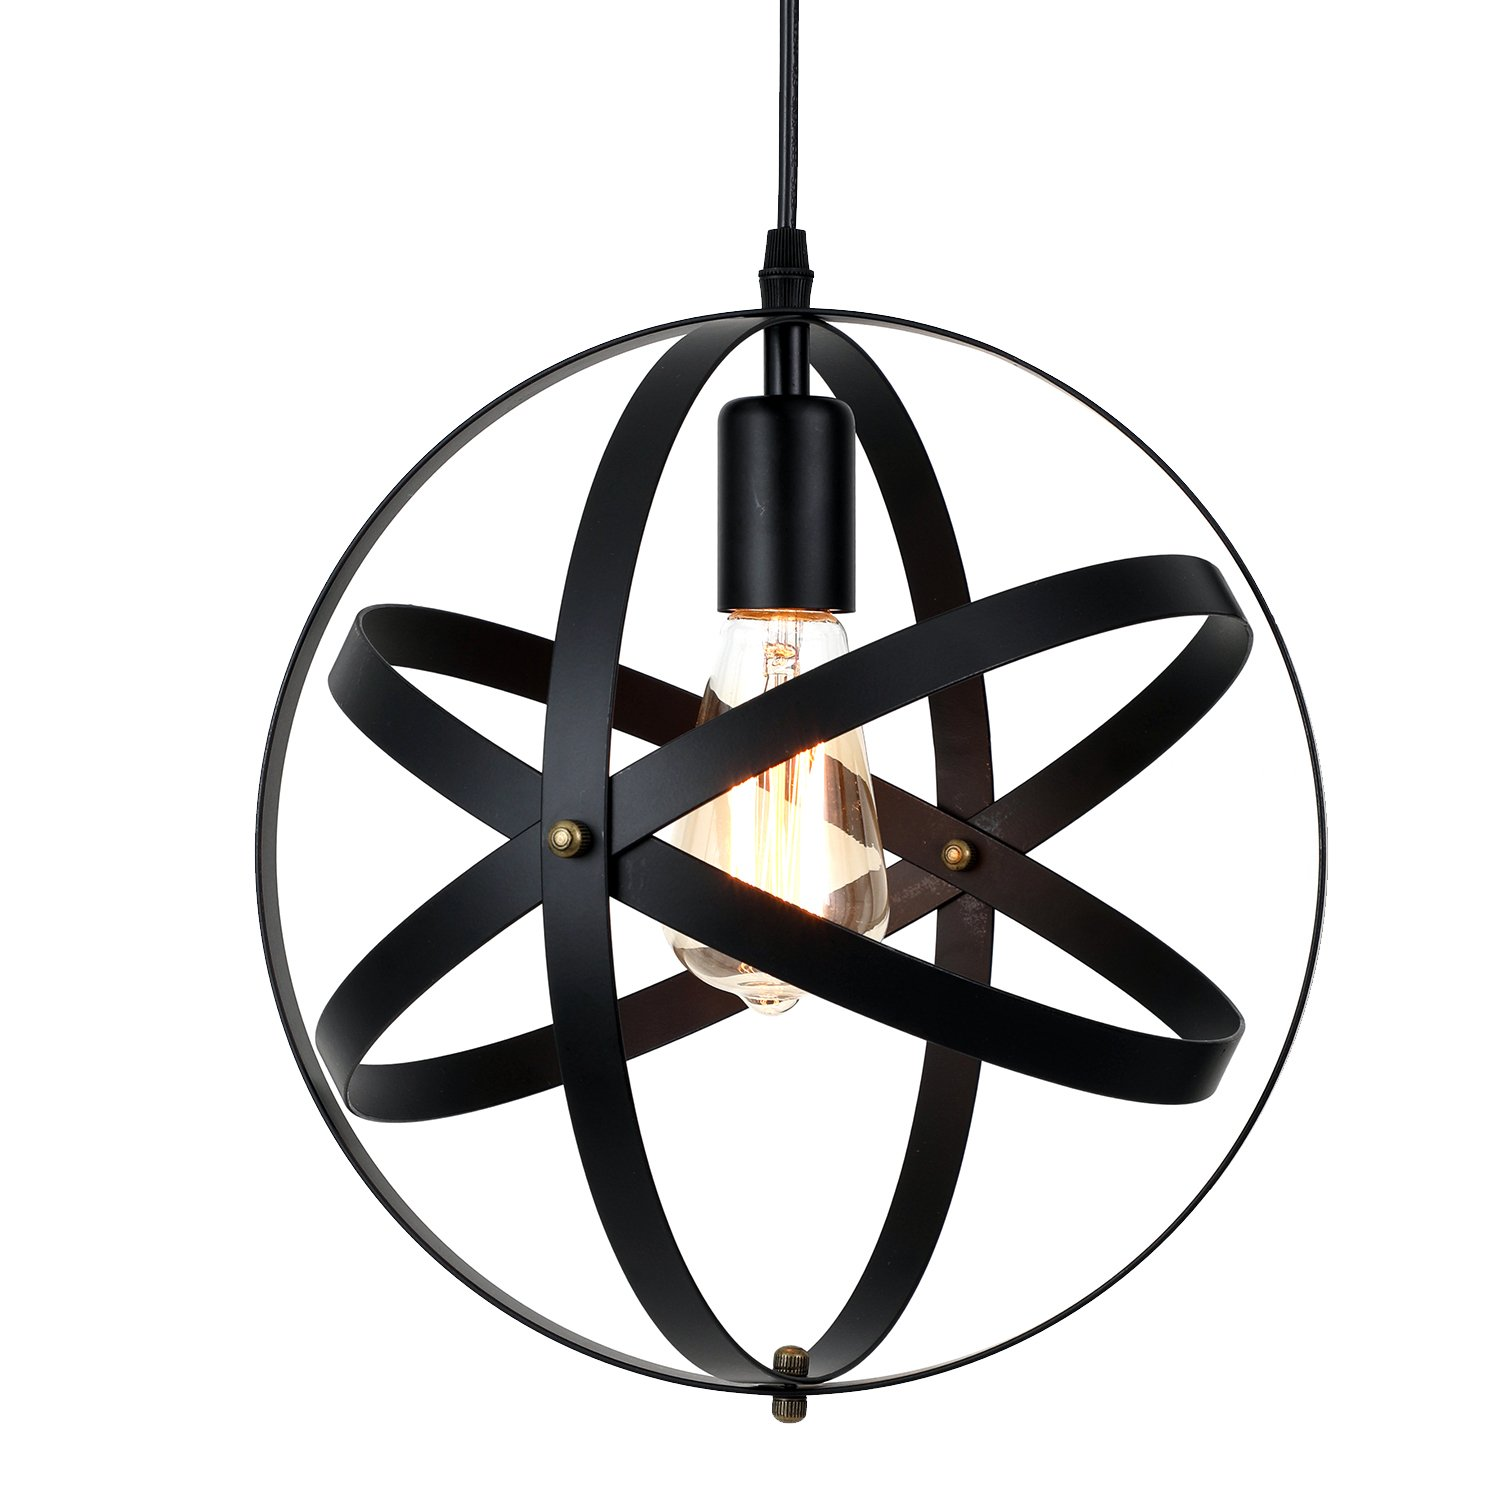 Pauwer Industrial Spherical Pendant Light Vintage Sphere Chandelier Lighting Glob Hanging Light Fixtures (Black B) by Pauwer (Image #1)